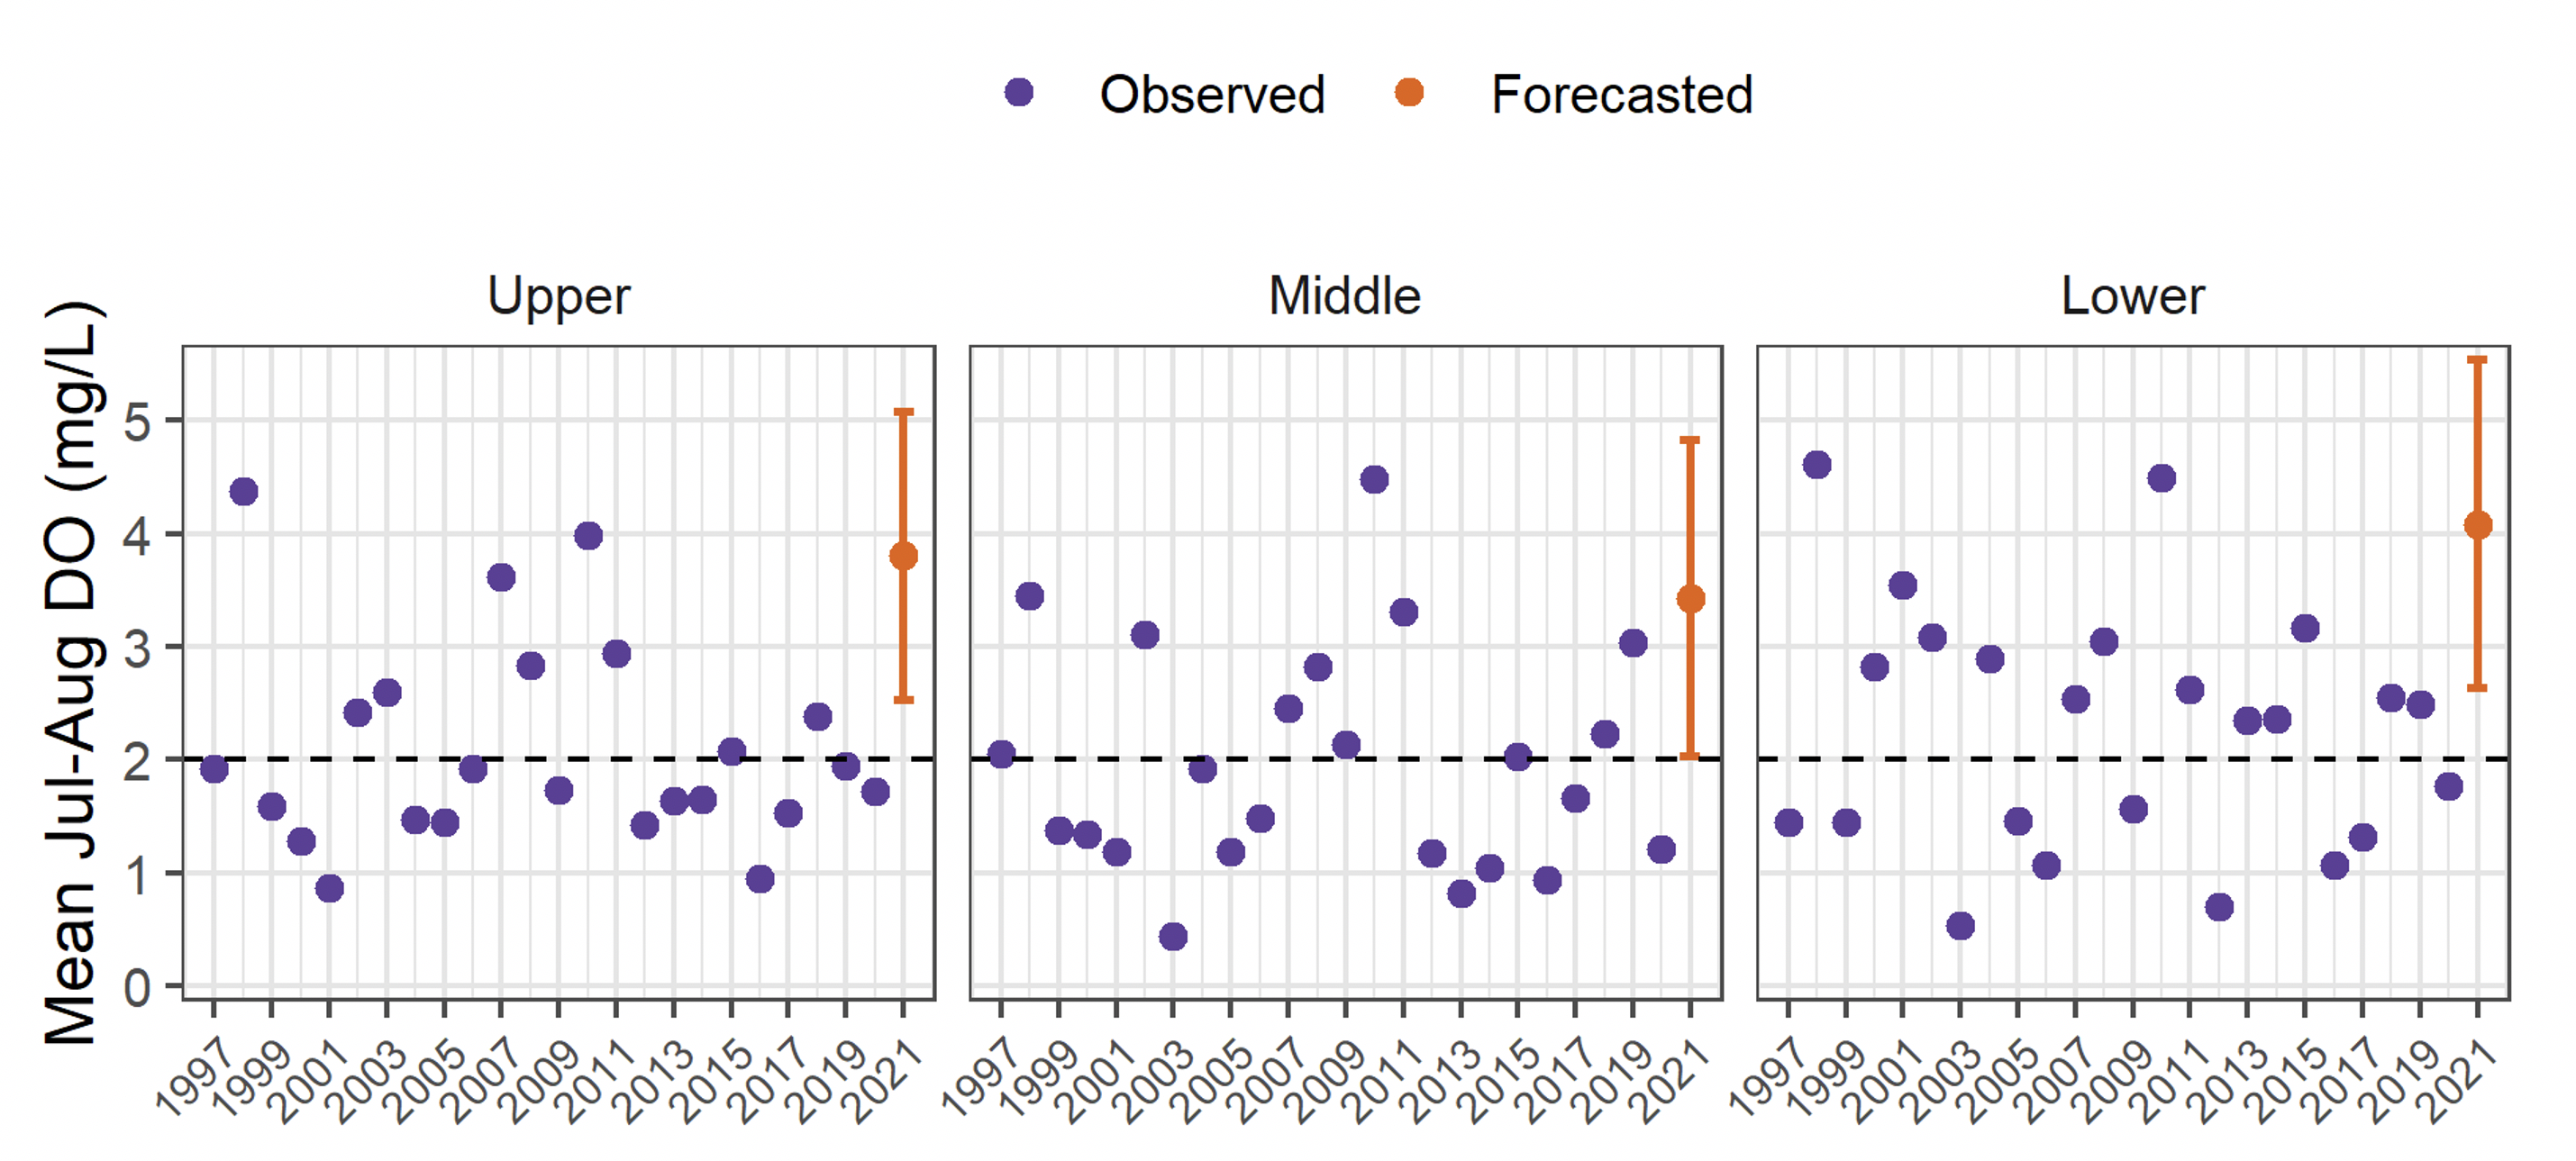 Figure 1. Historical (violet) and forecasted (orange) average bottom dissolved oxygen levels from July through August for the upper, middle, and lower segments of the Neuse River Estuary. The orange bars represent 90% uncertainty intervals. The dashed line shows the threshold for dissolved oxygen for hypoxic conditions (2.0 mg/L).